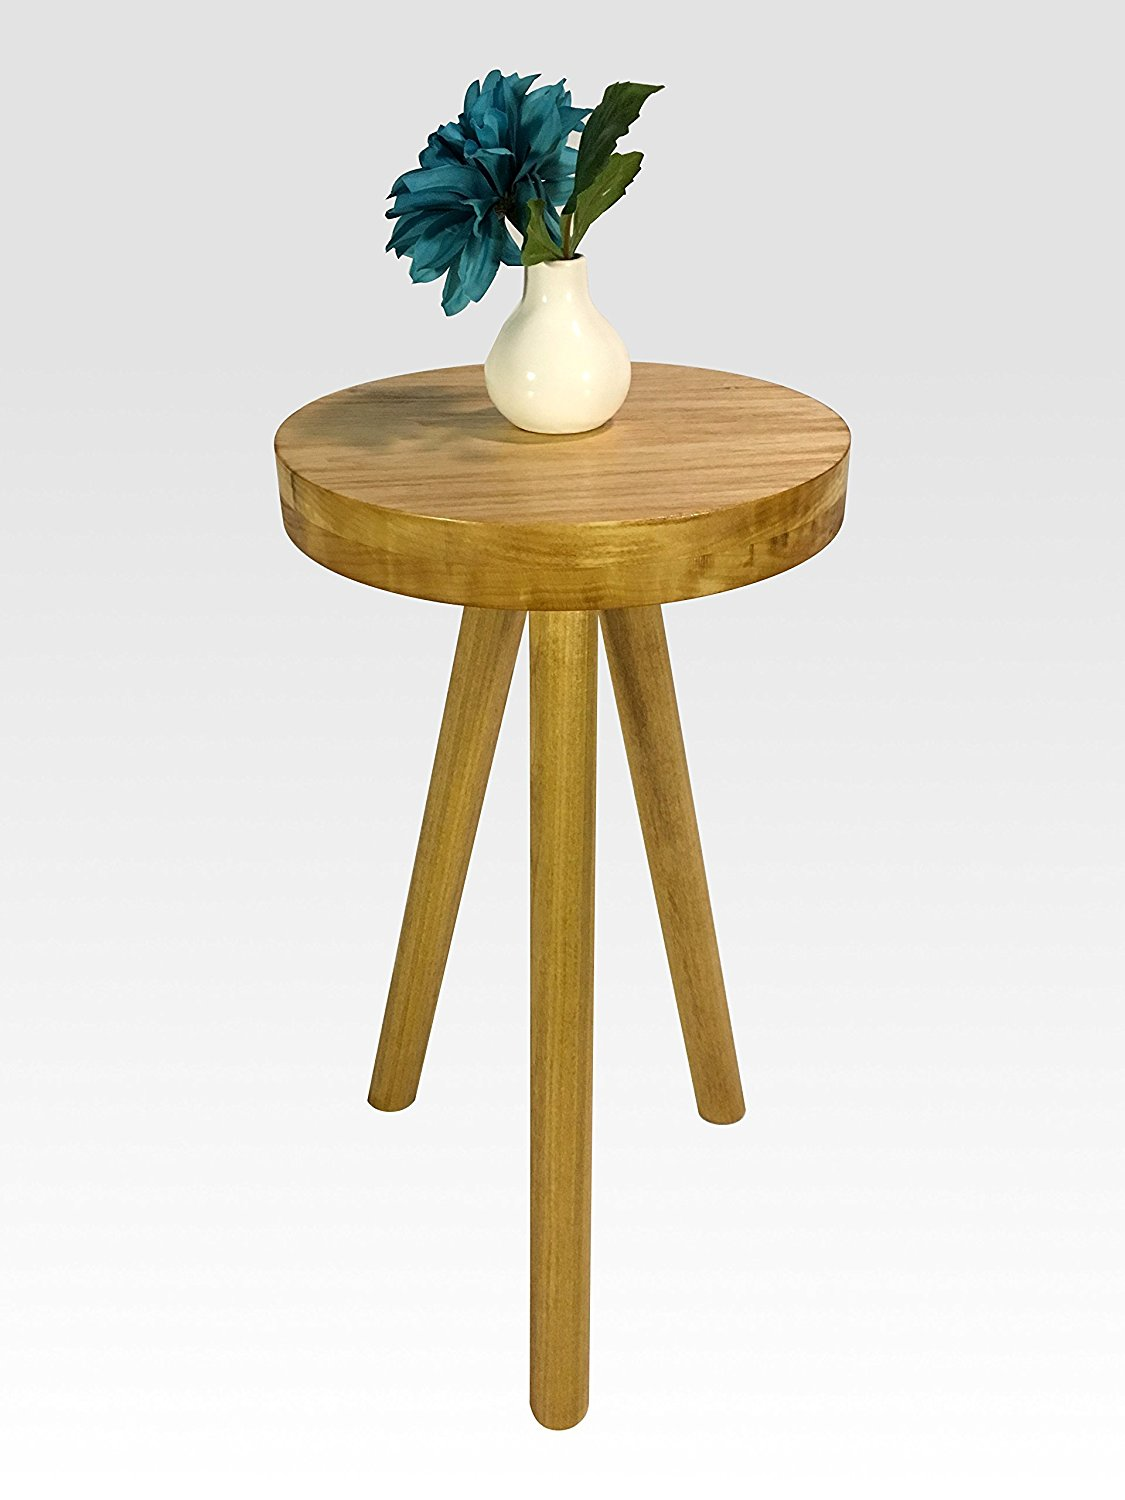 Modern Side Table in Honey by Candlewood Furniture End Table Bar Stool, Bedside Table, Nightstand, Wood, Wooden, Three Legged Table